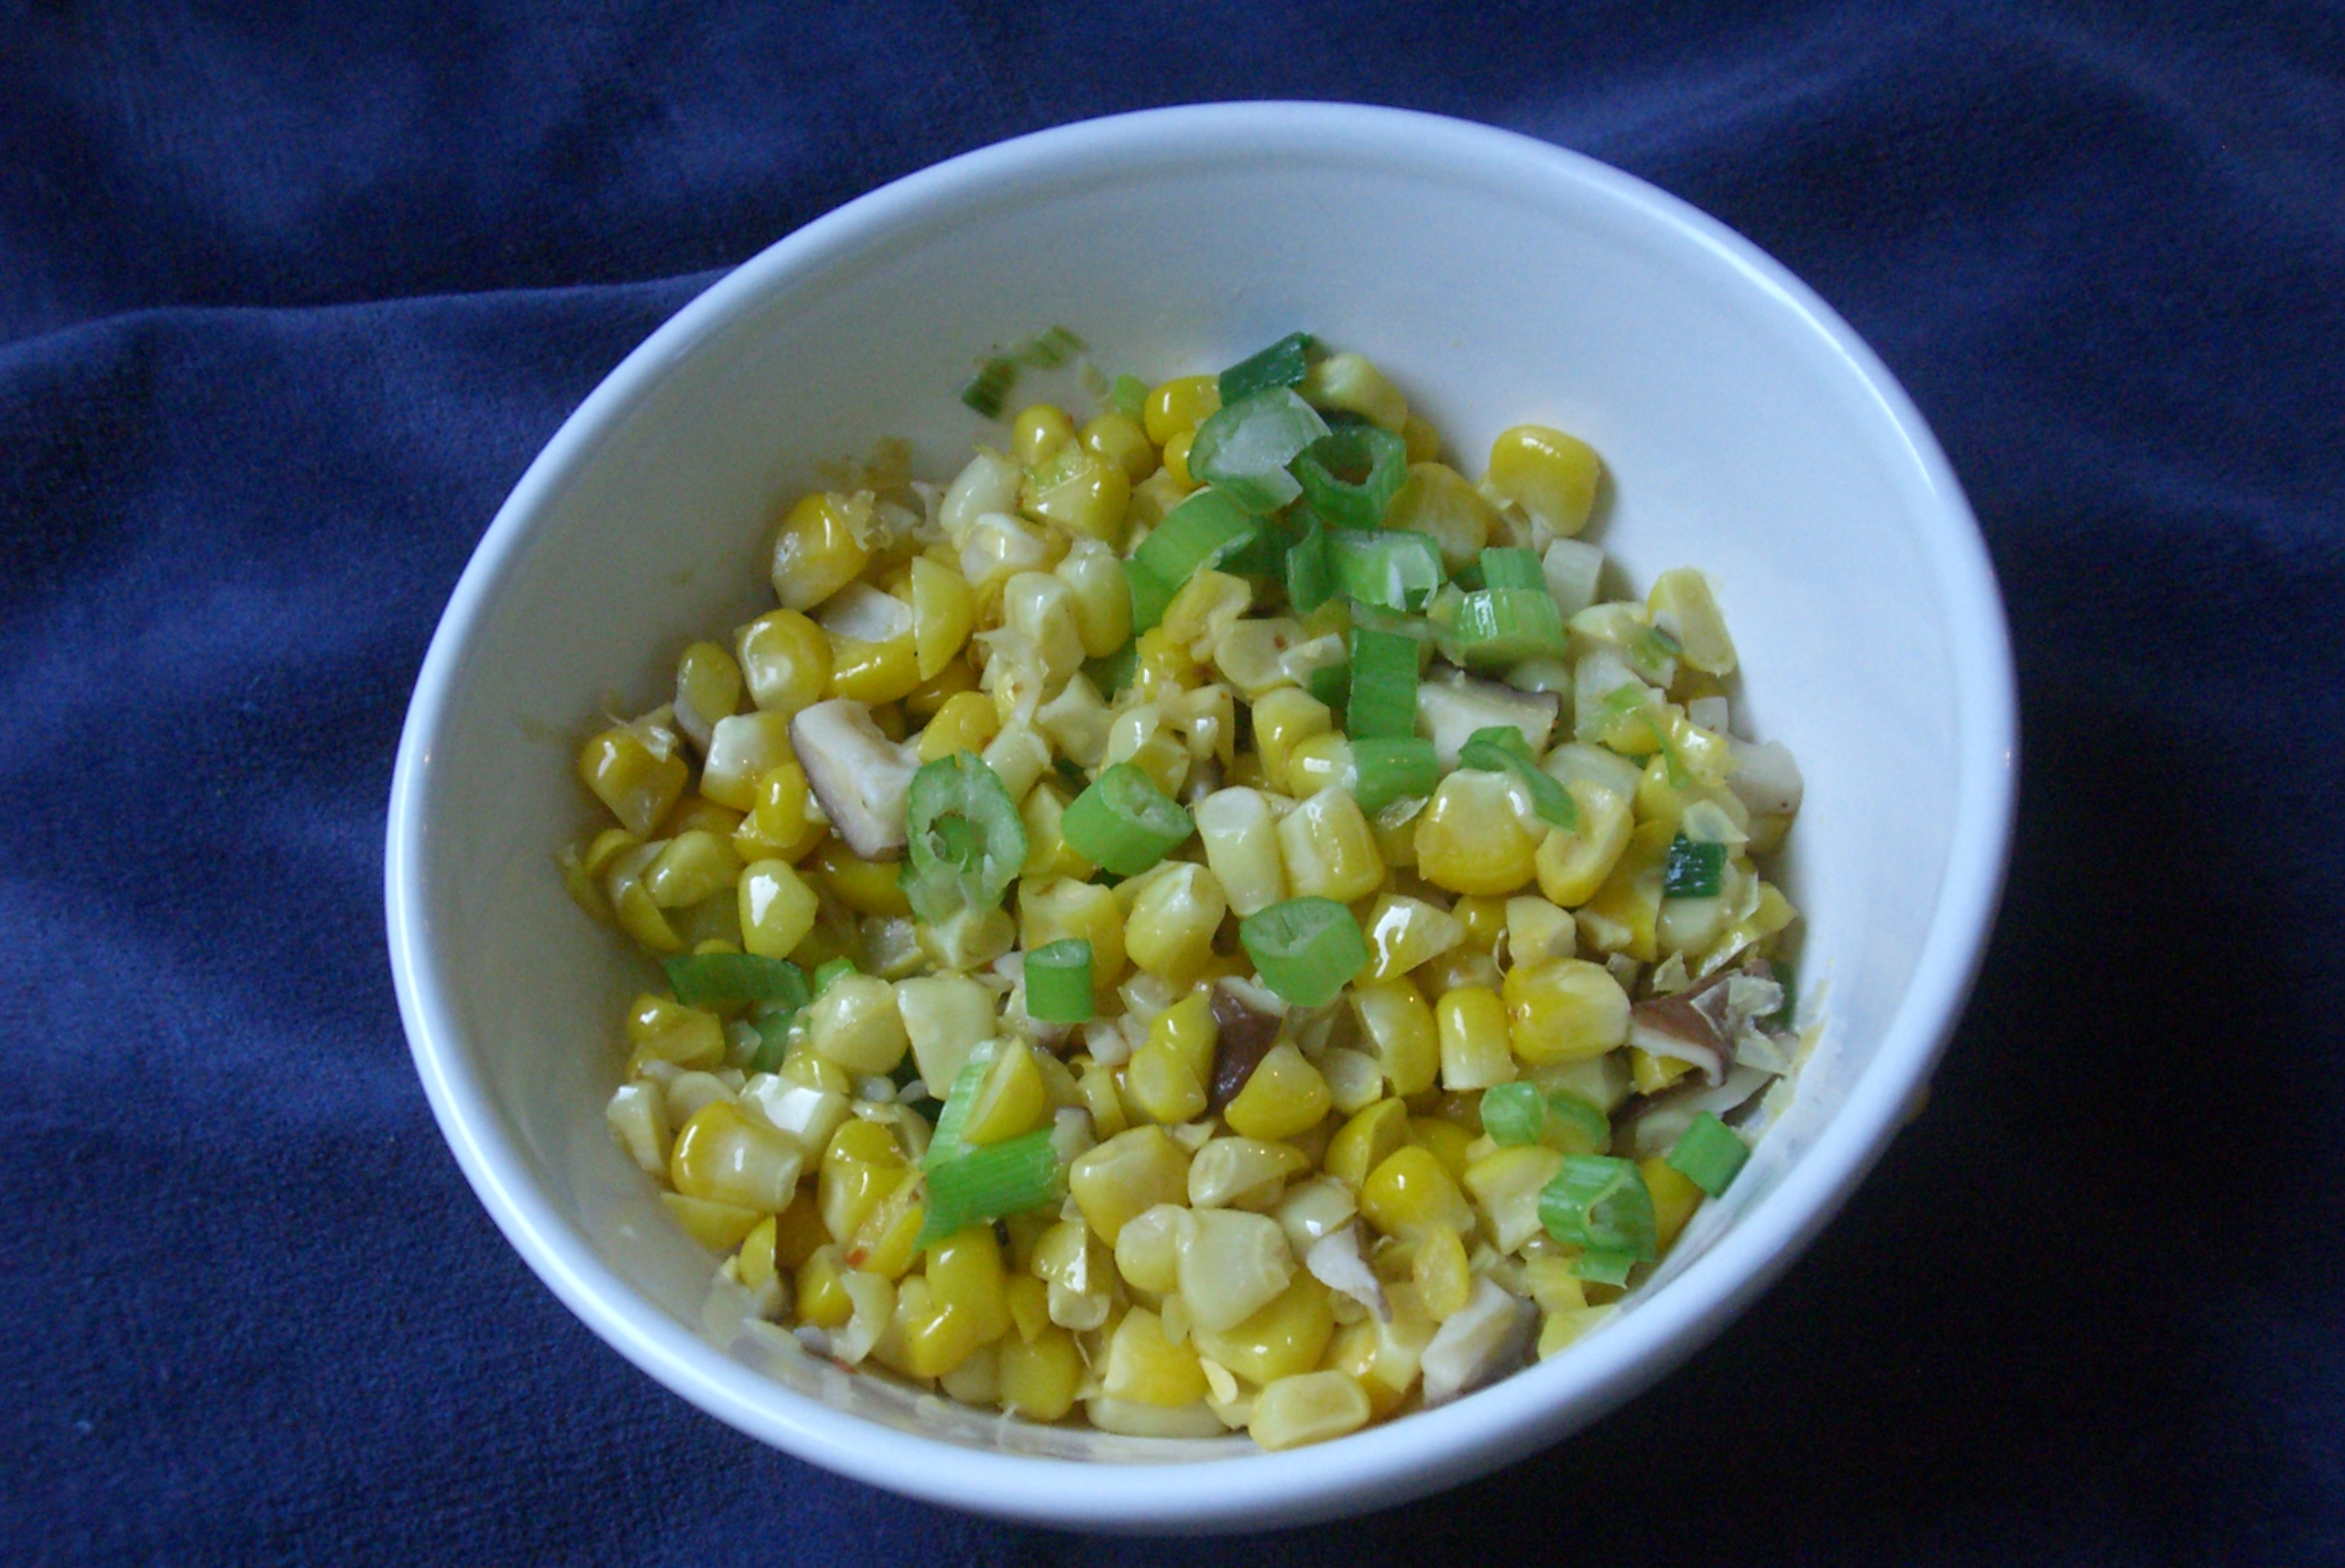 Sauteed Corn, Green Onions and Shiitake Mushrooms